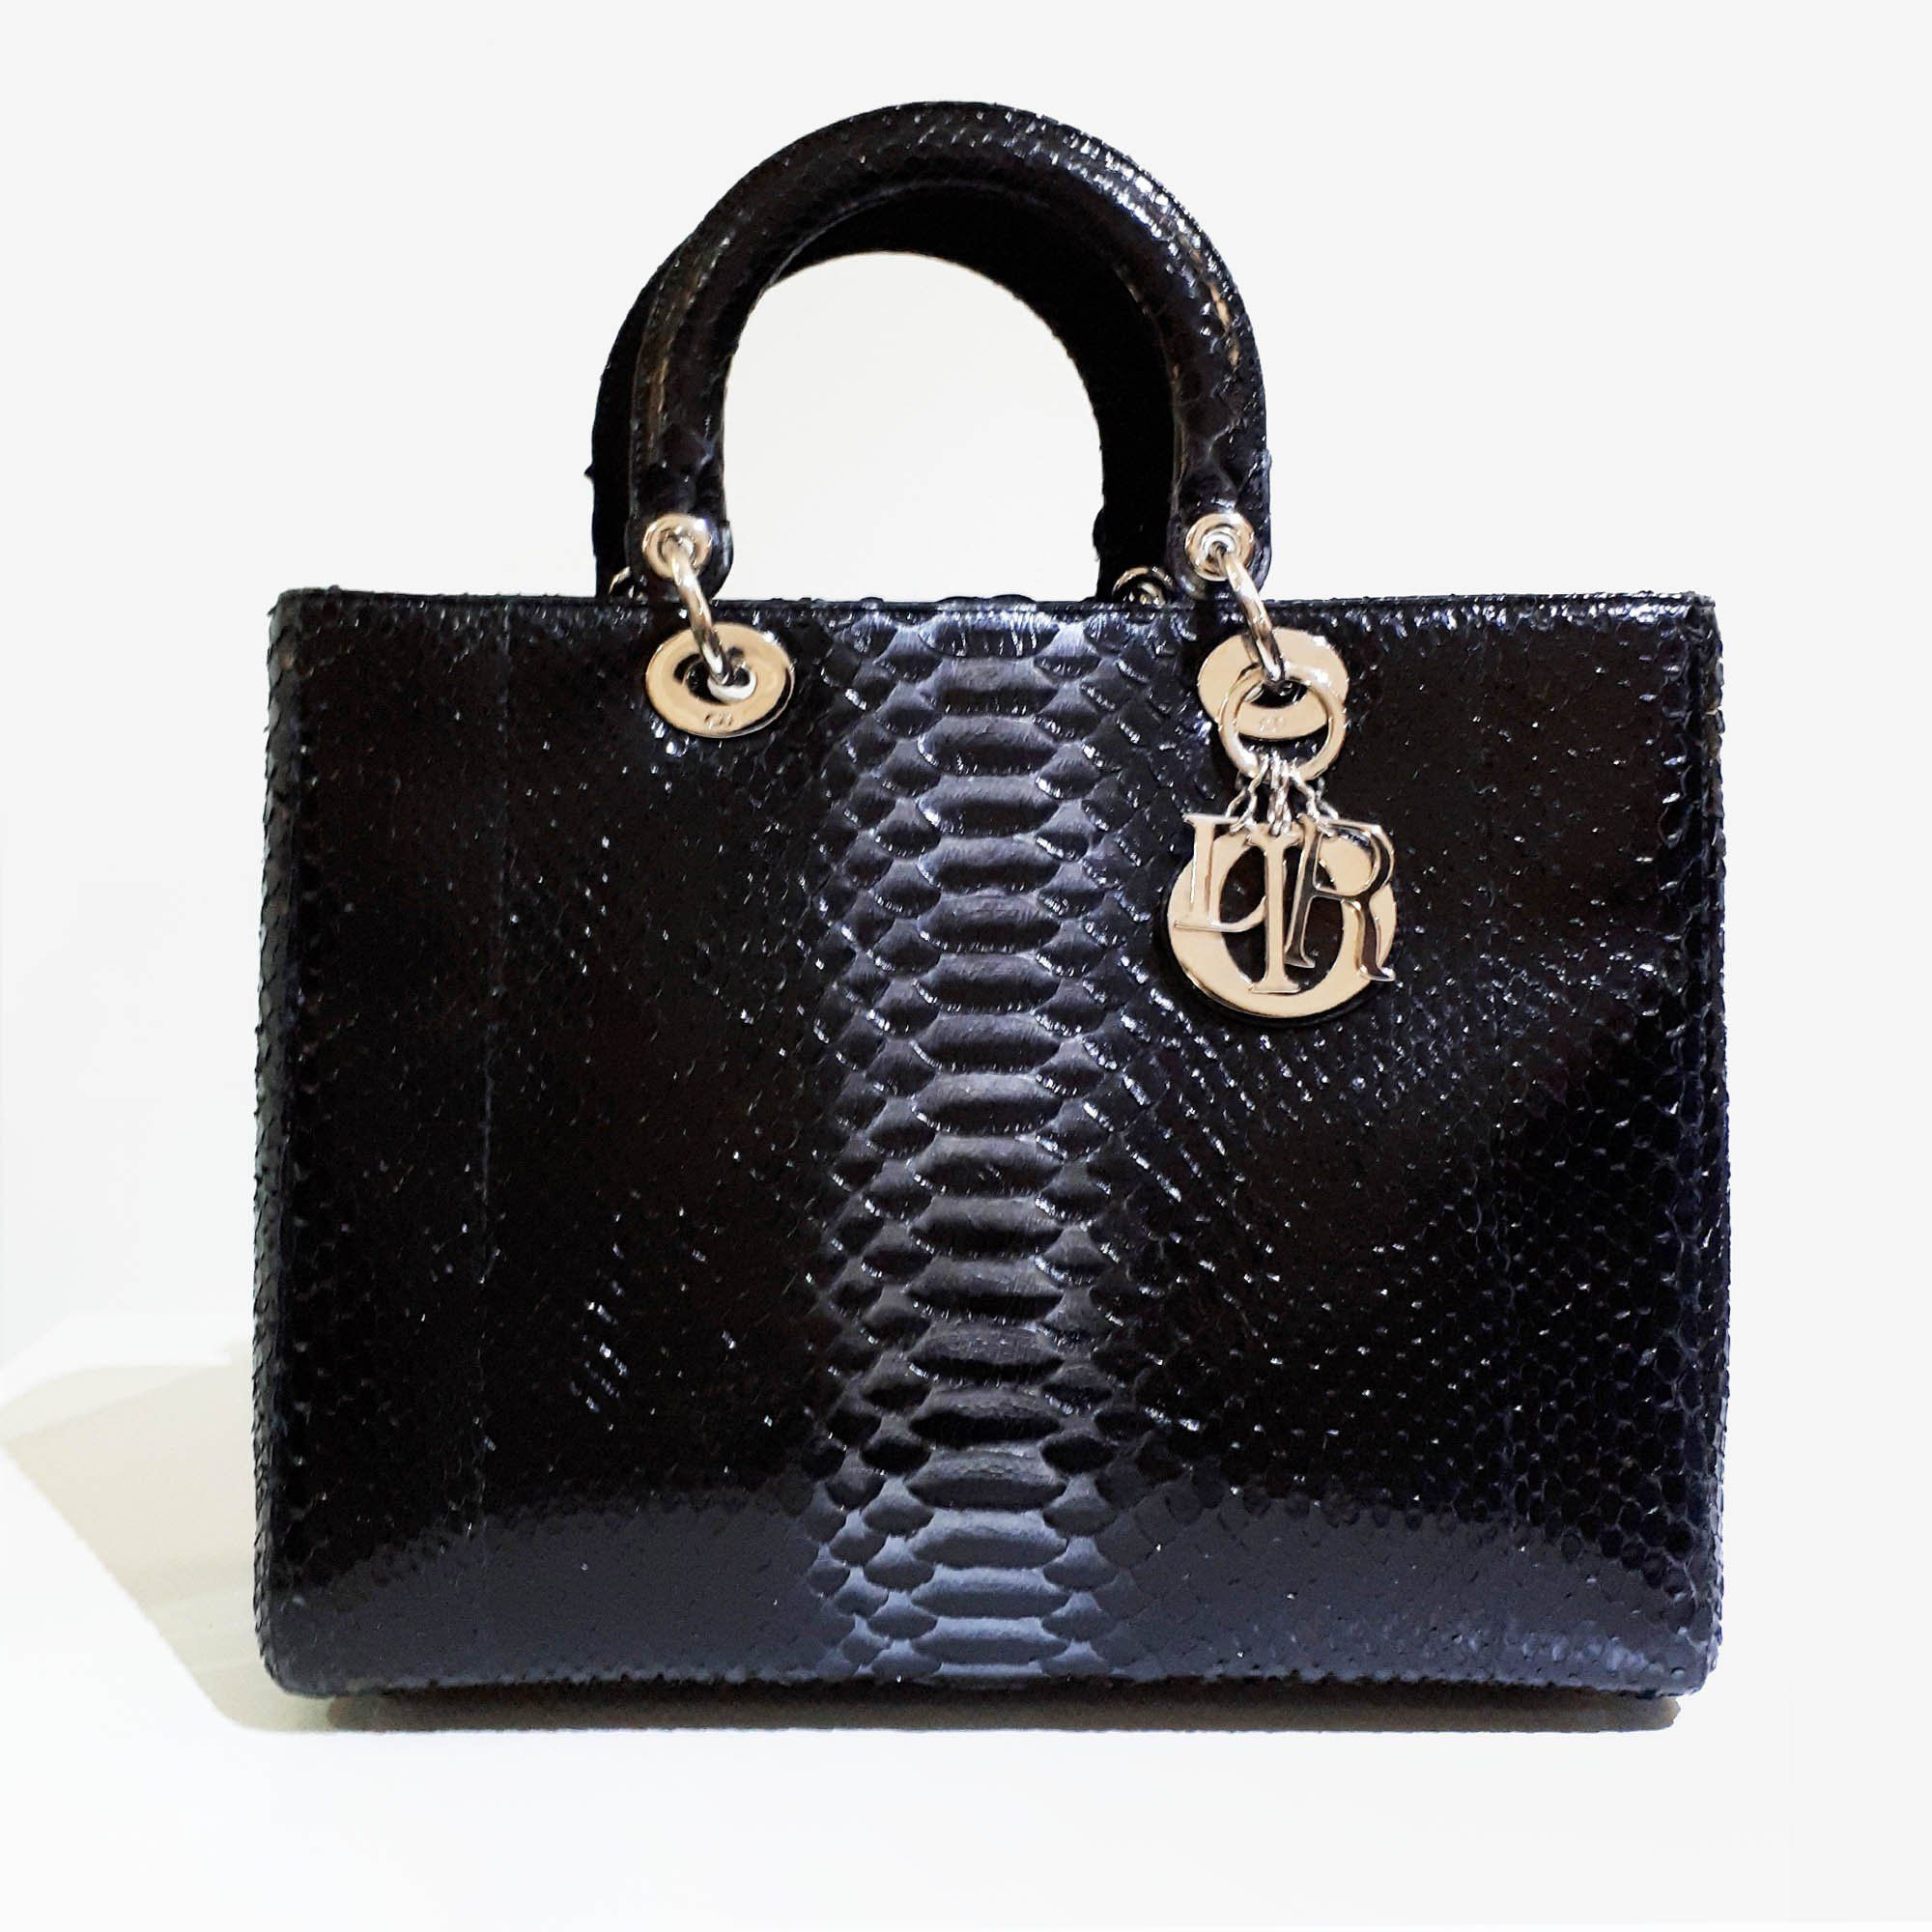 Dior Dior Python Leather Black Bag yCcDuLWiCg